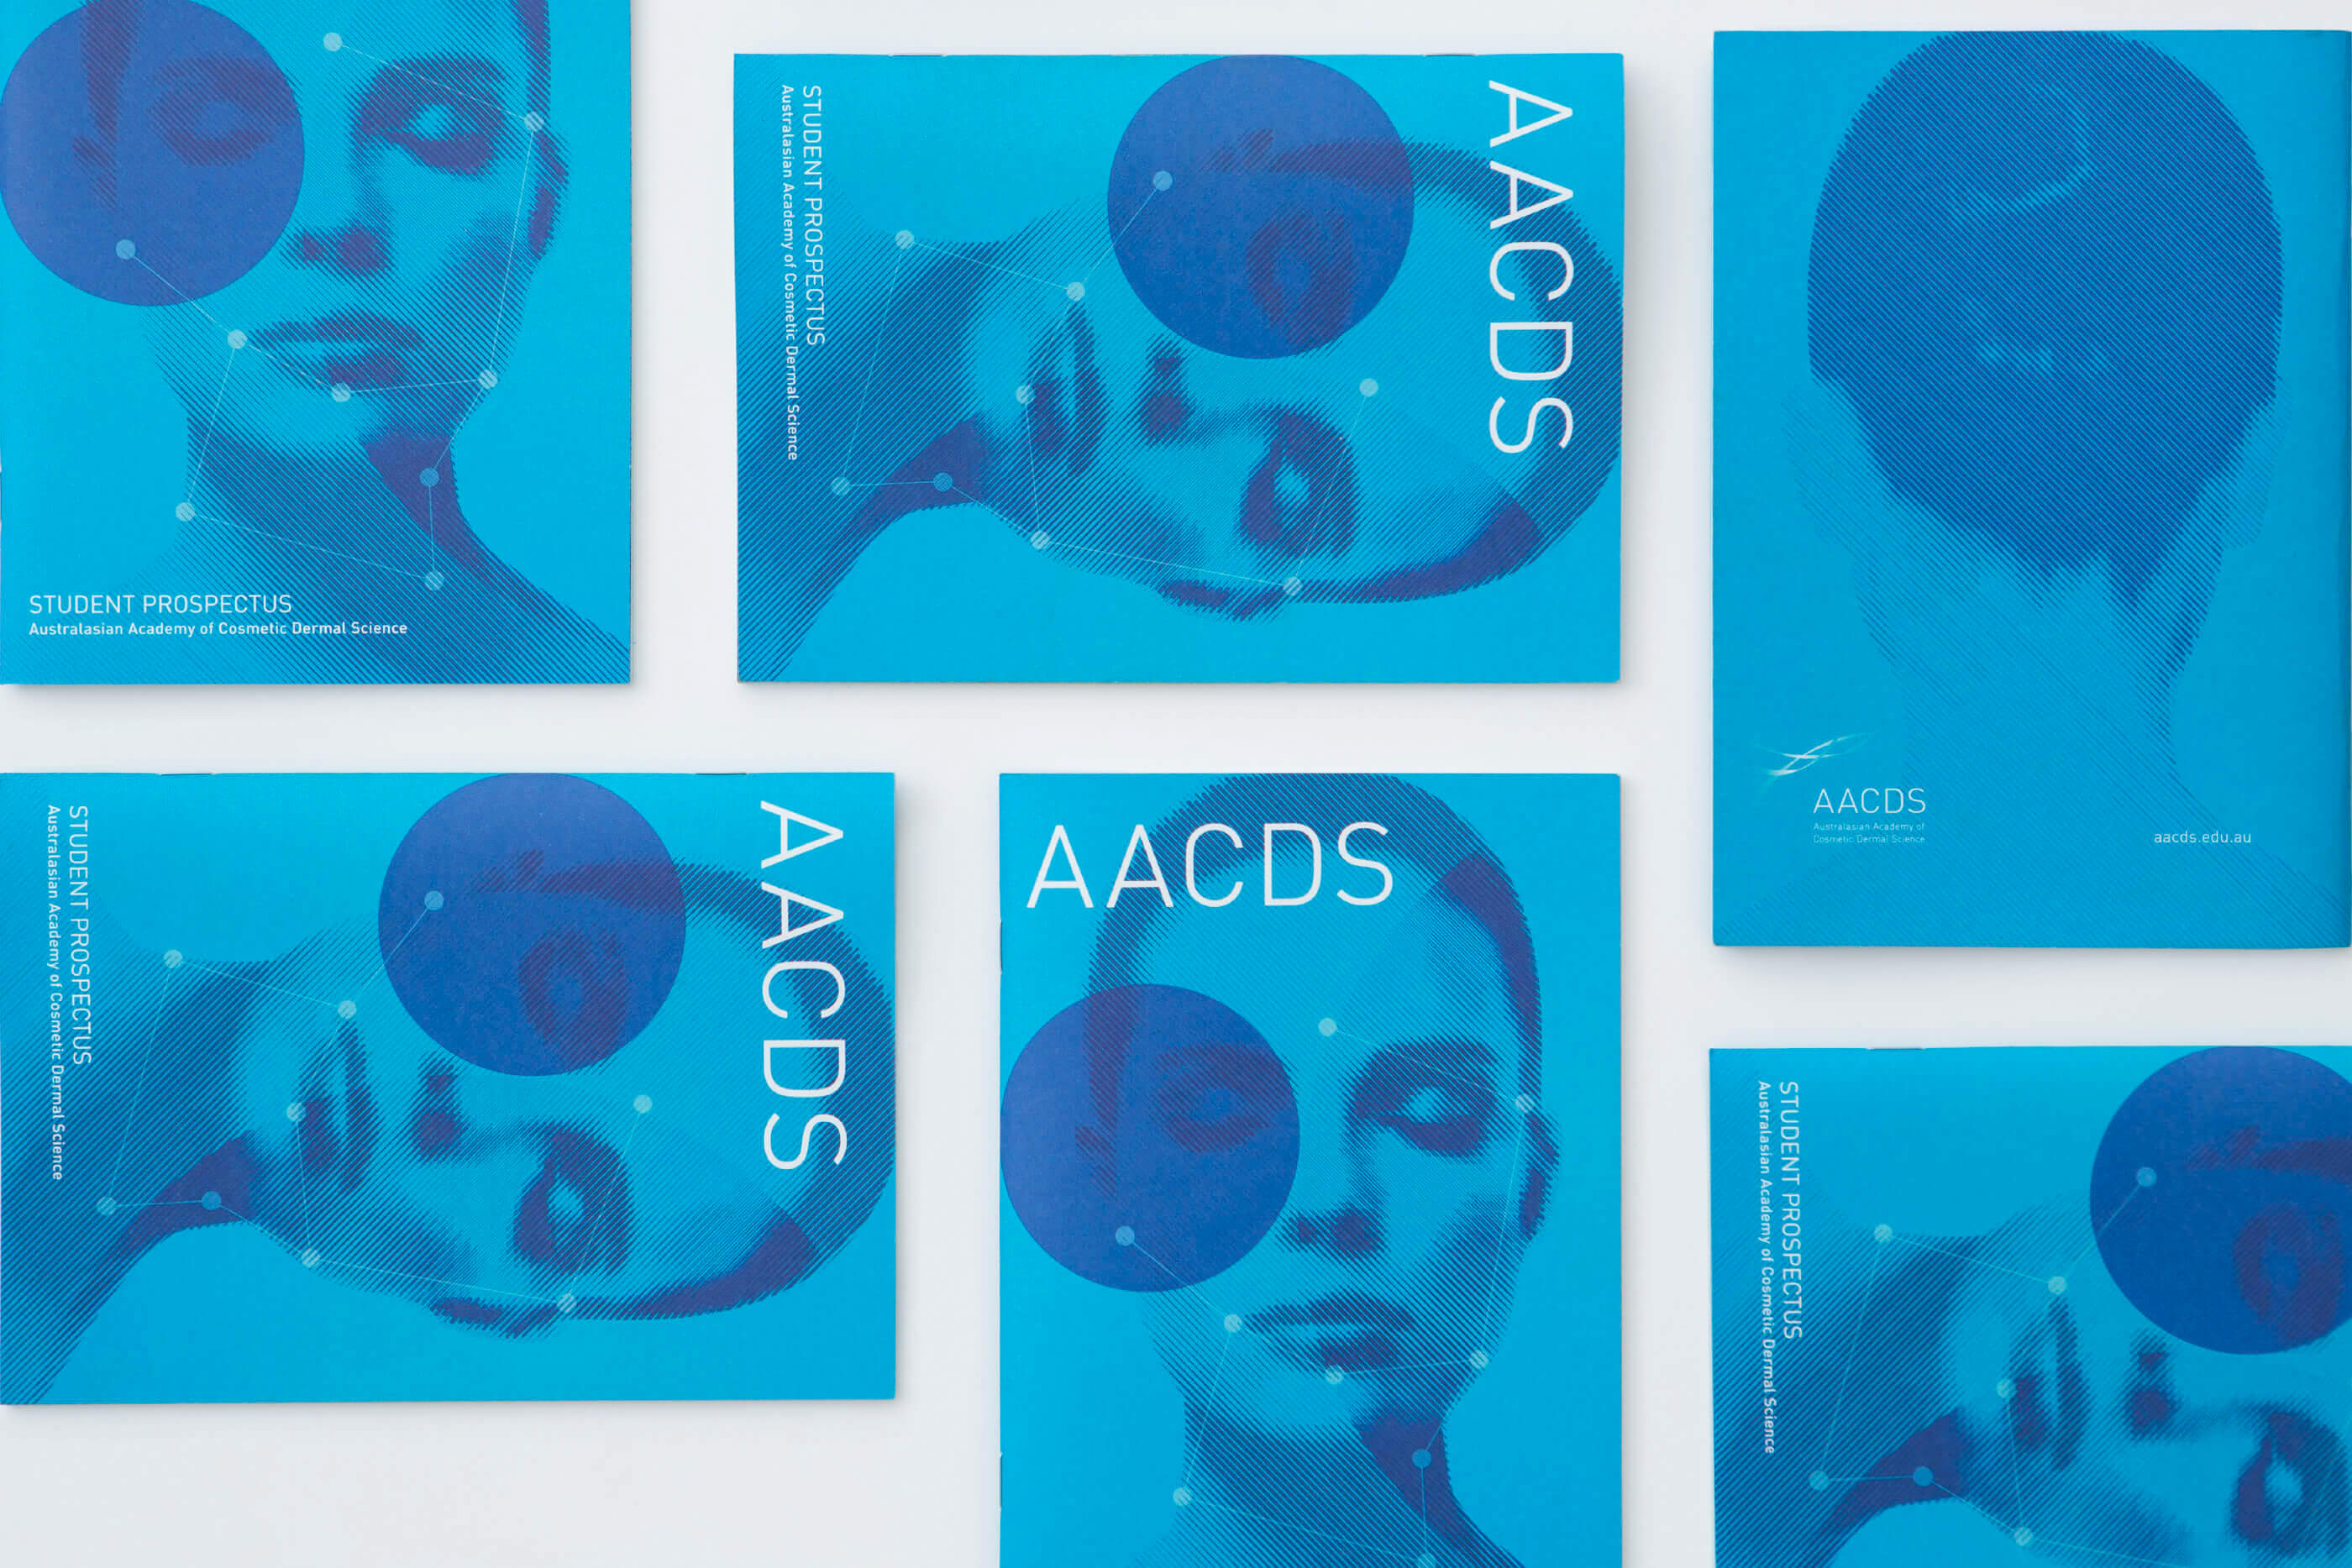 aacds_prospectus_covers